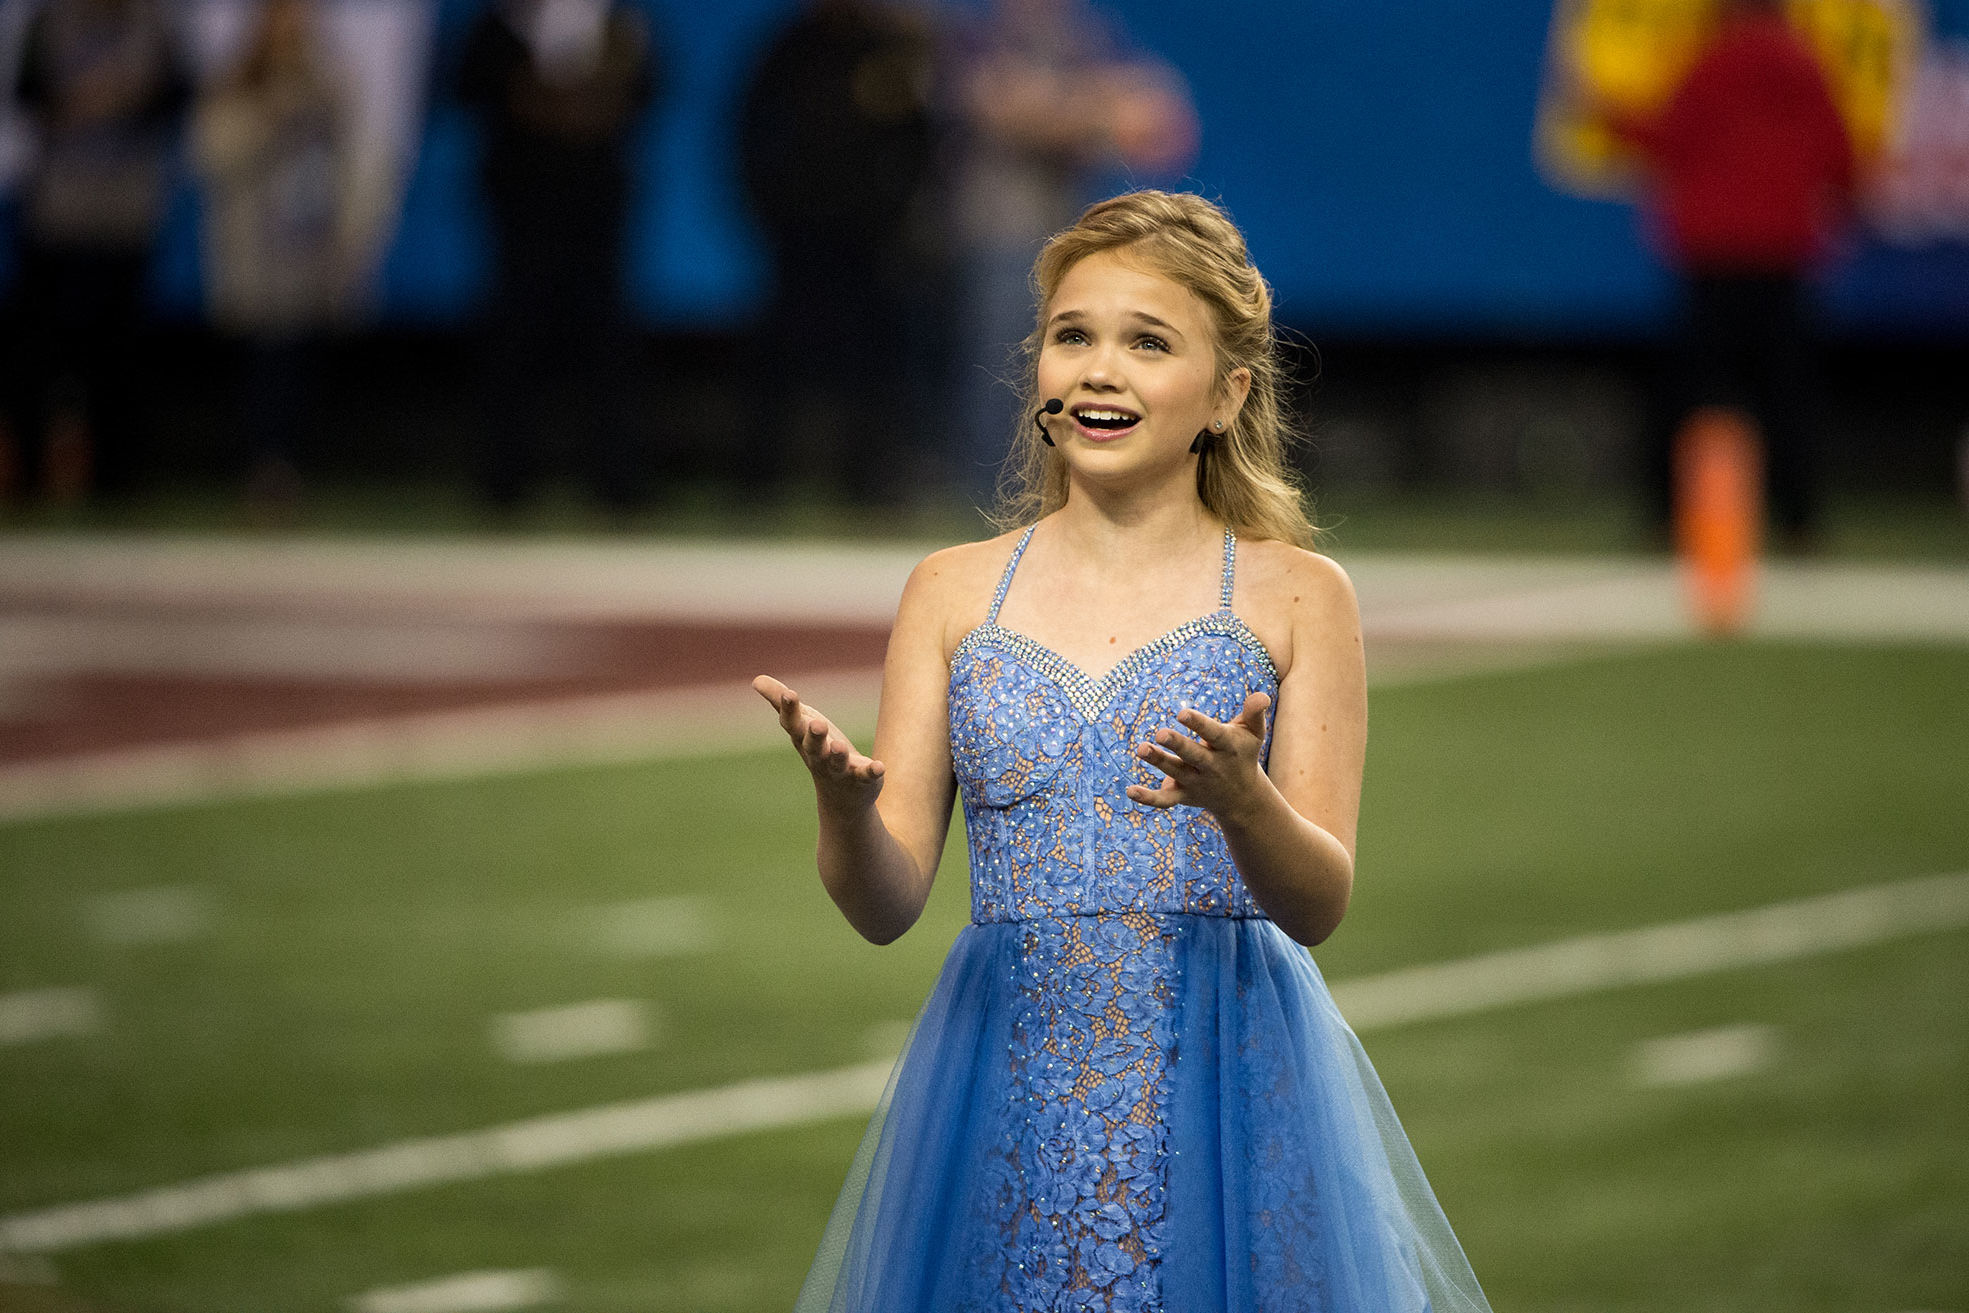 13-Year-Old with Rare Respiratory Disorder Sings 'God Bless America' at Peach Bowl: 'It Was a Dream Come True'